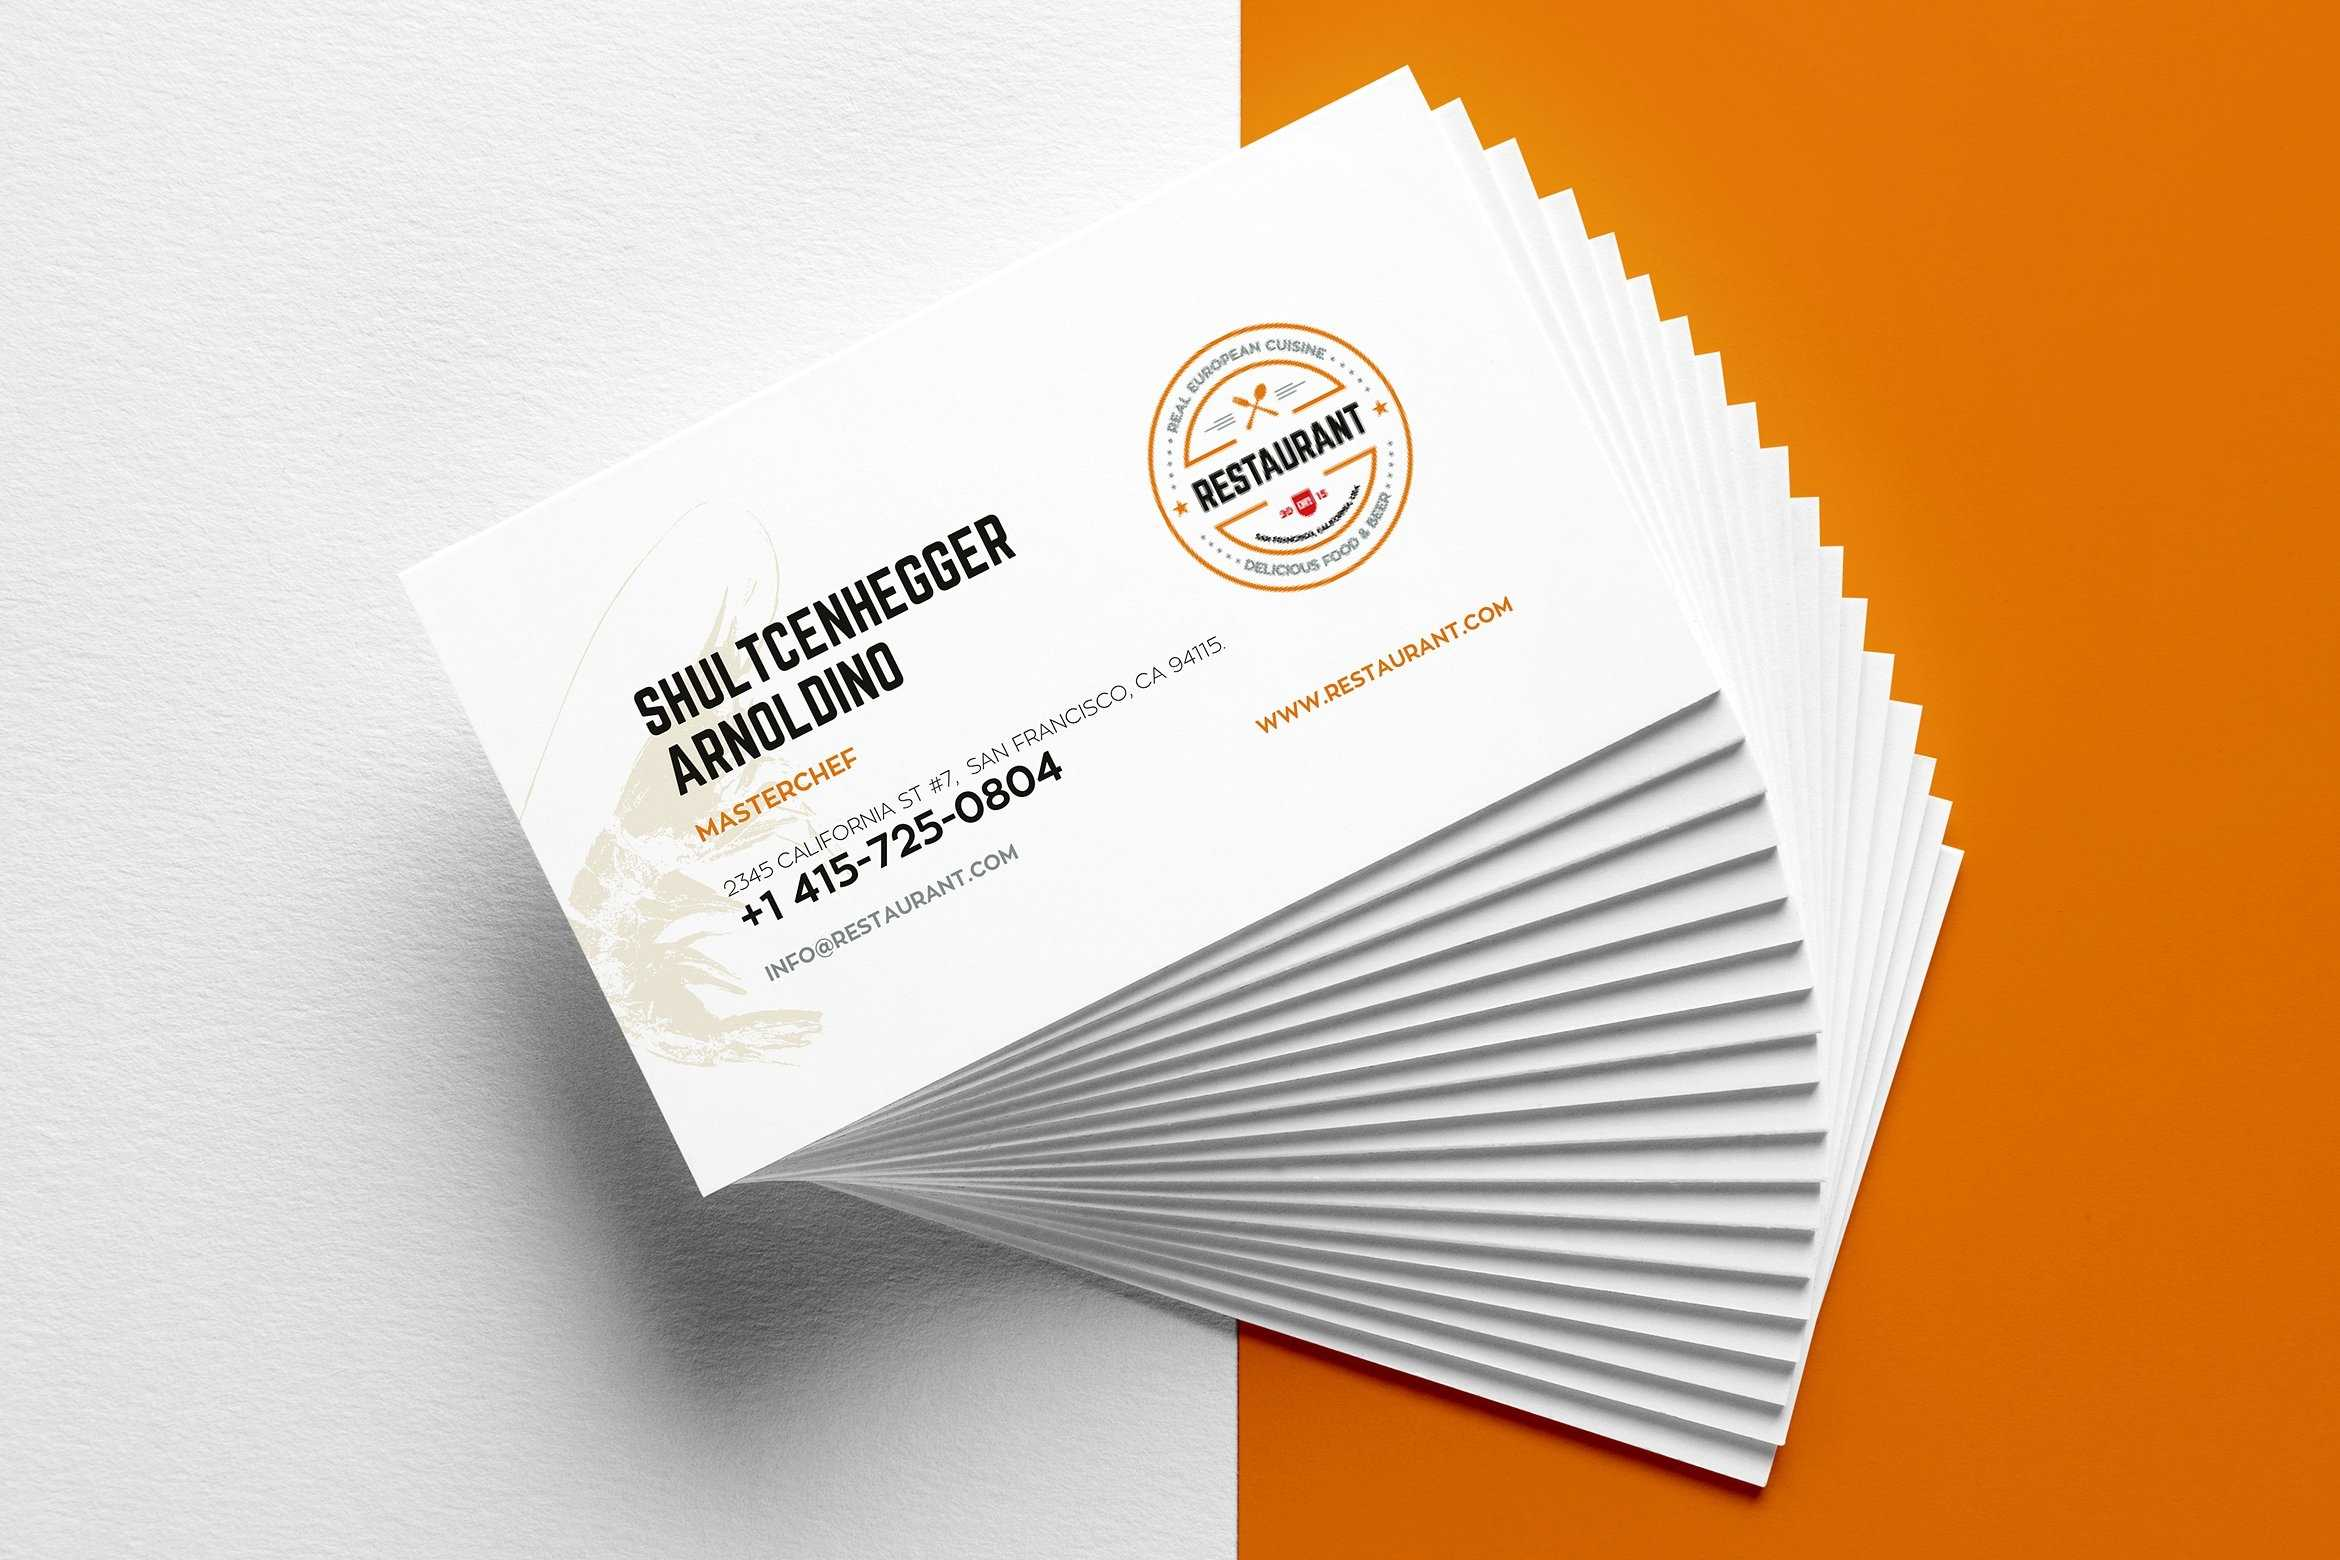 001 Microsoft Office Business Card Template Ideas Templates Regarding Microsoft Office Business Card Template